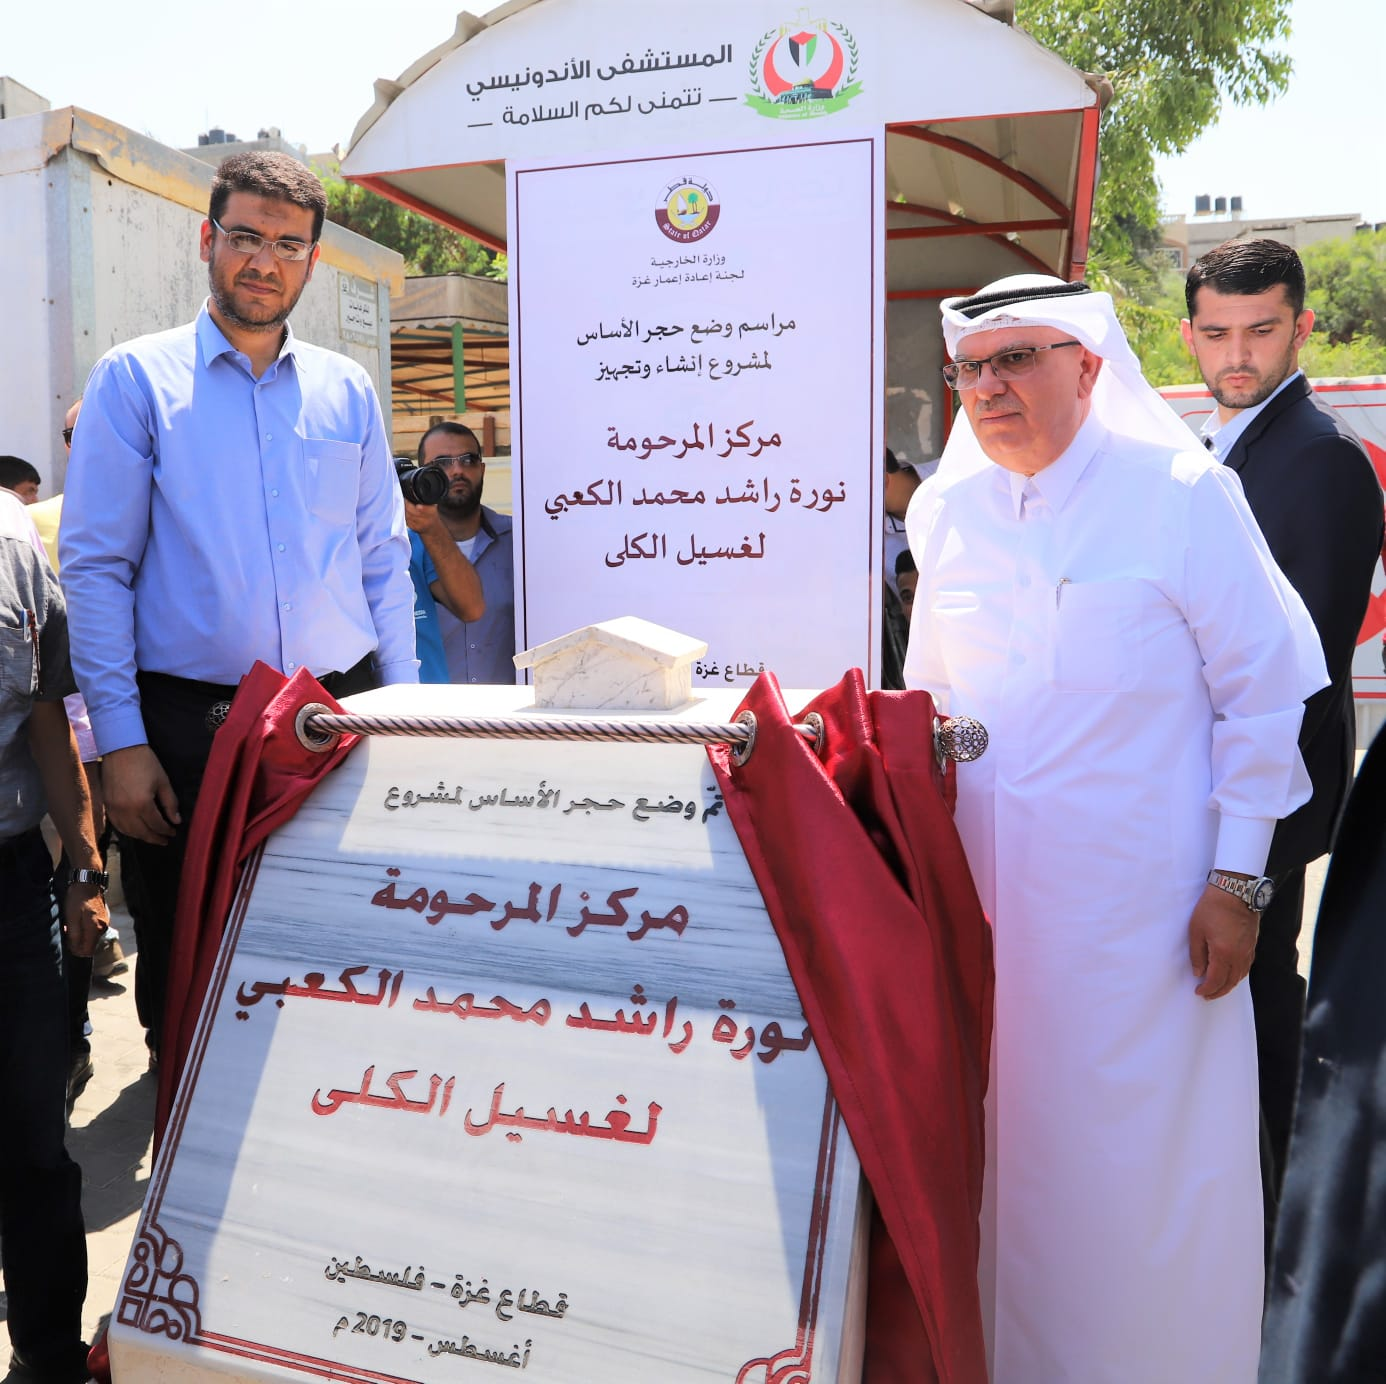 MOH-Gaza and Gaza Reconstruction Committee inaugurating the groundbreaking ceremony of Nora Ben Rashed Al-Kabi Center for renal dialysis